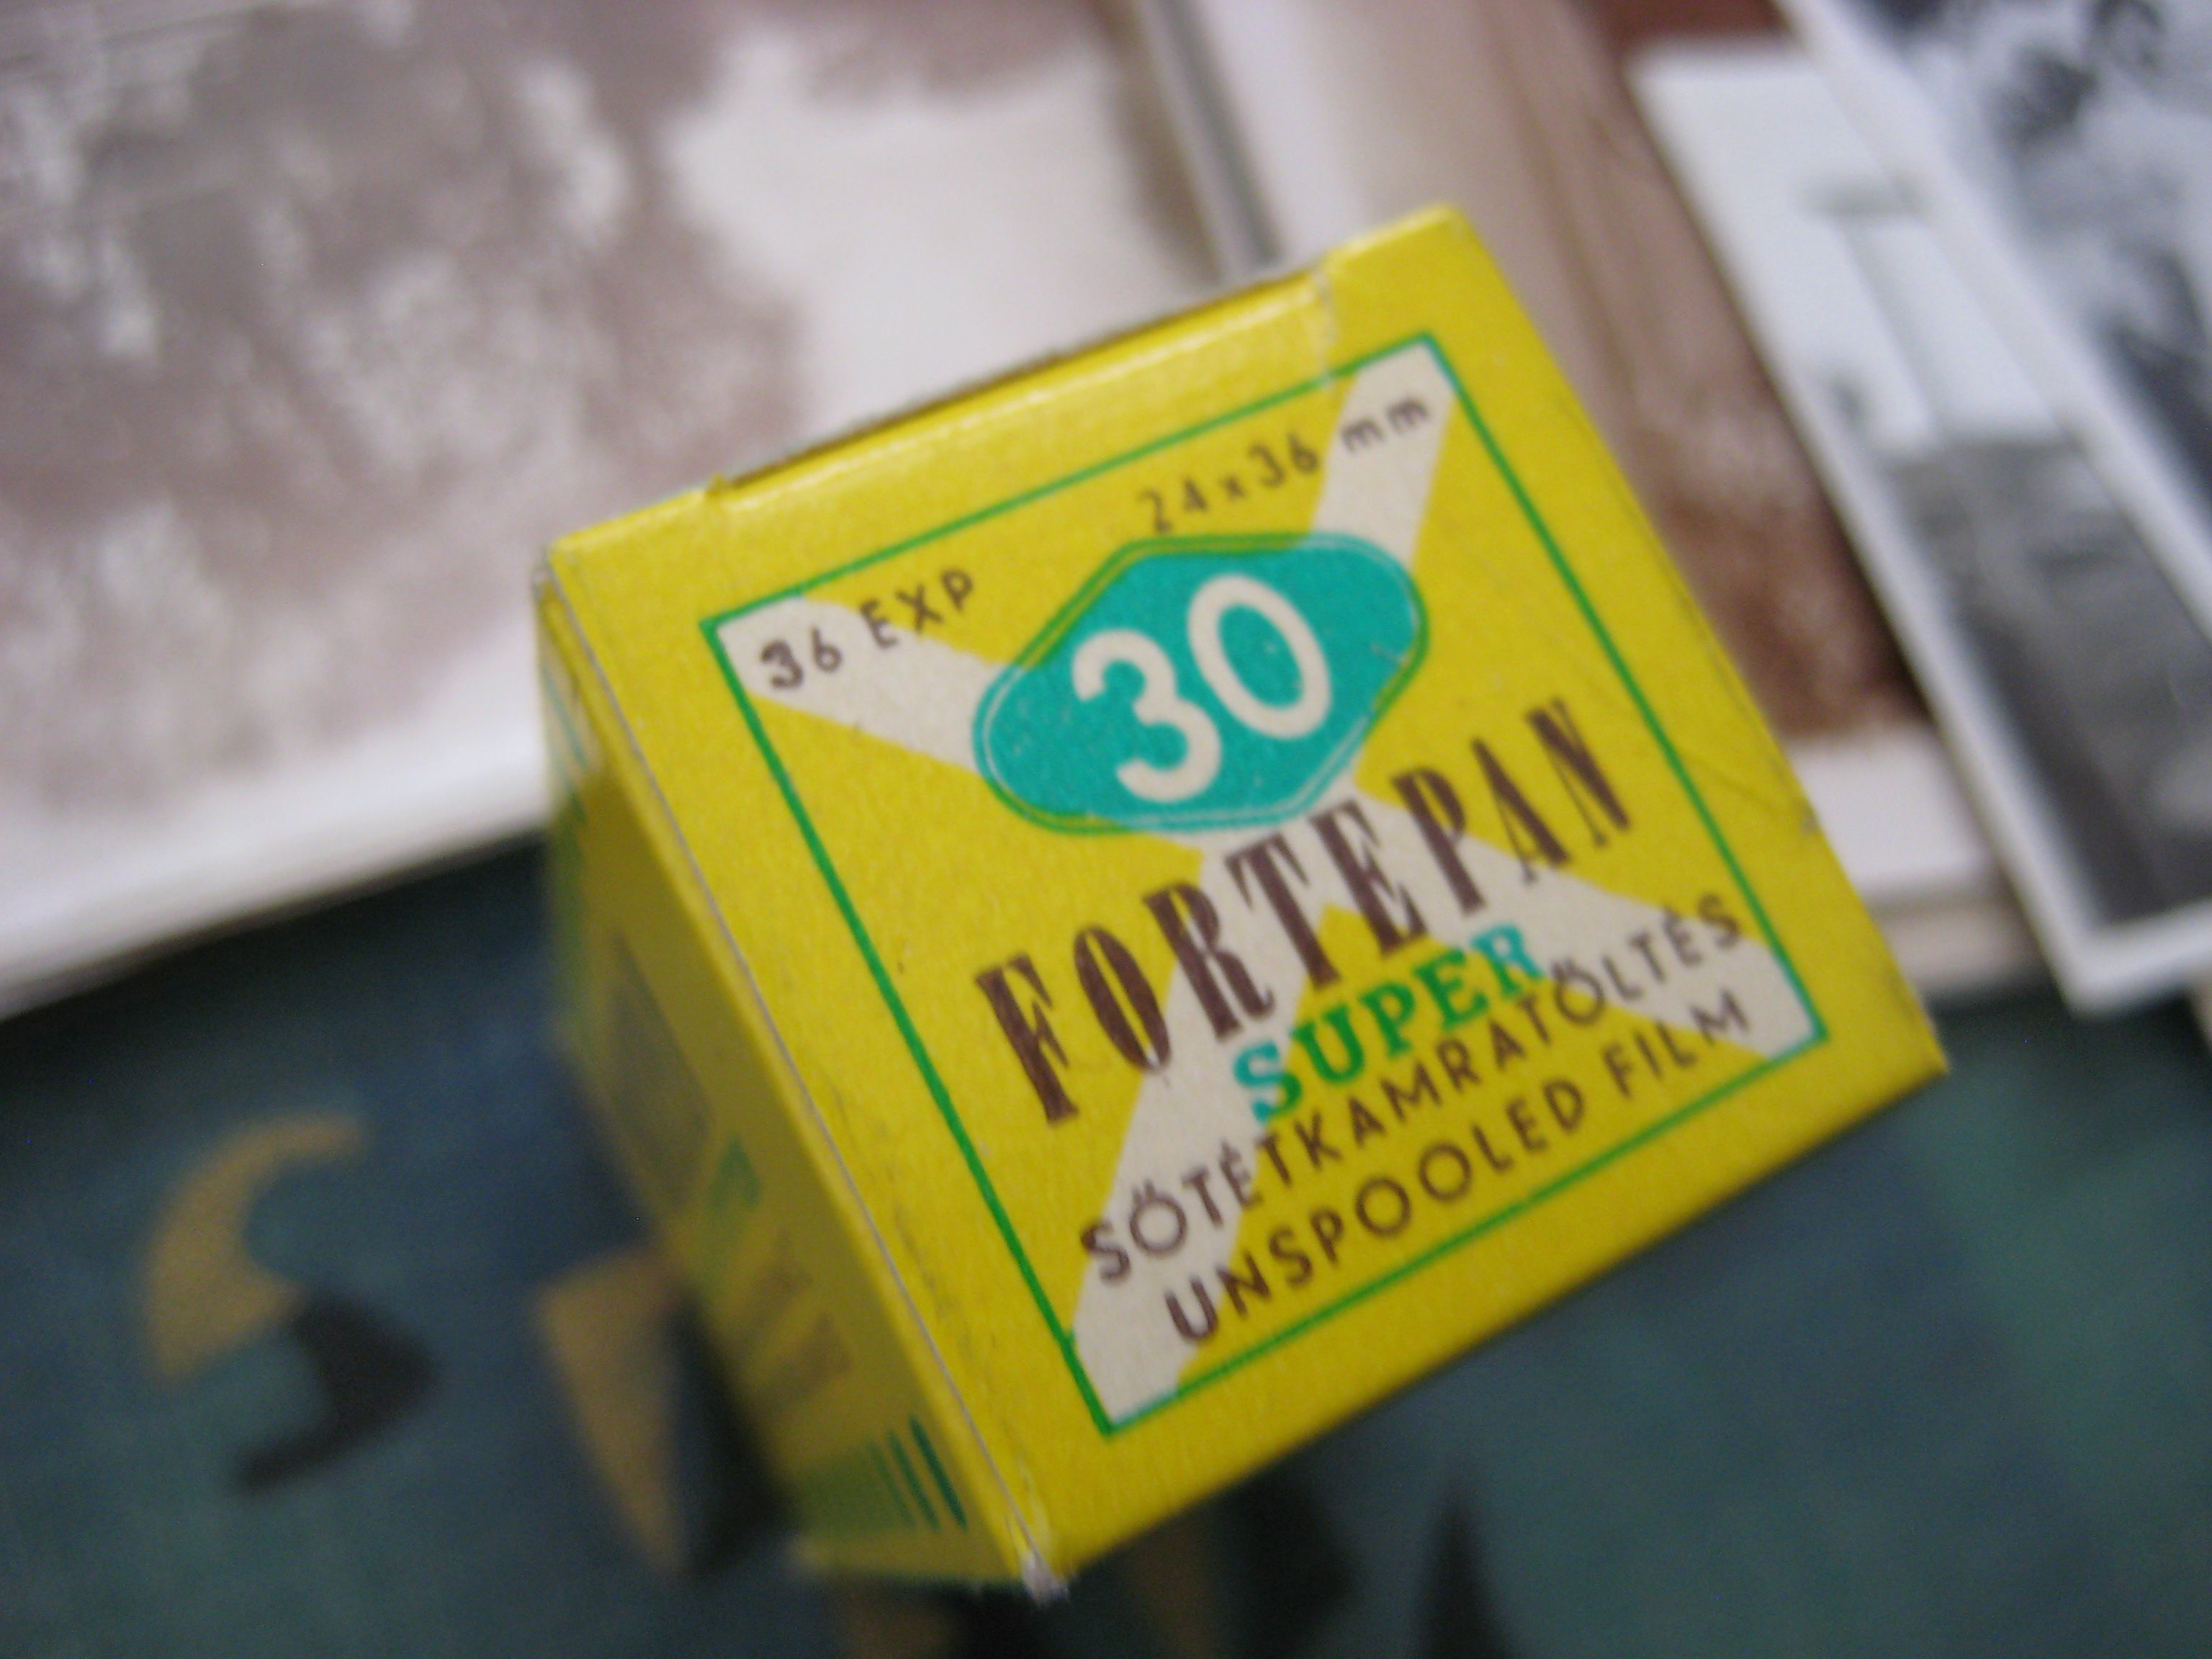 Fortepan film, product of Forte factory